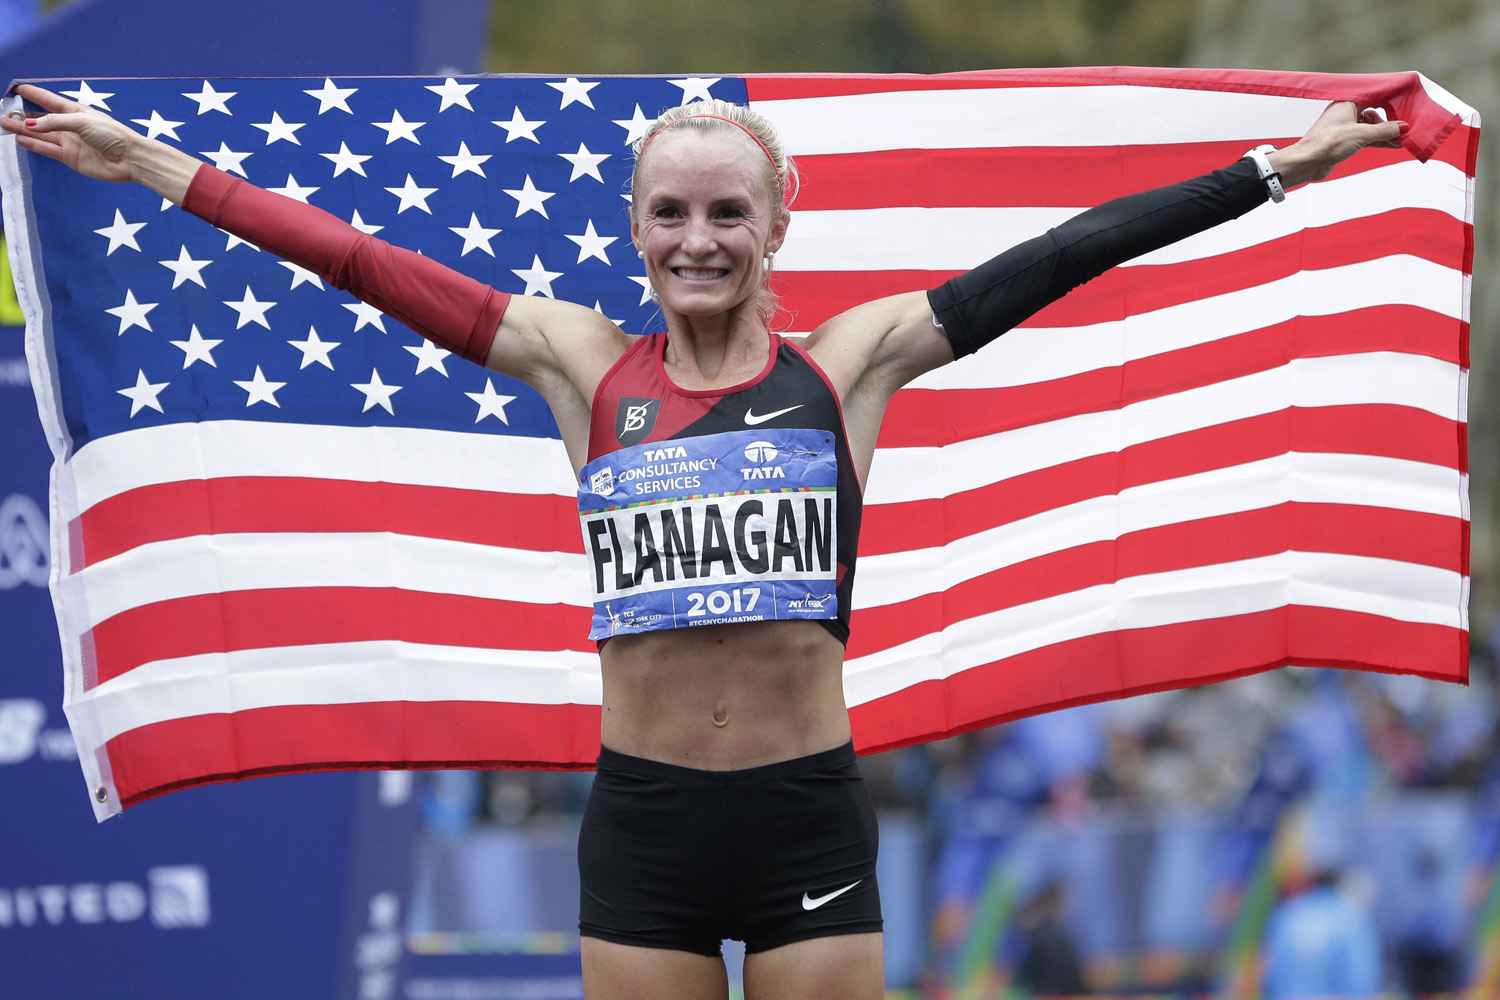 new york marathon winner